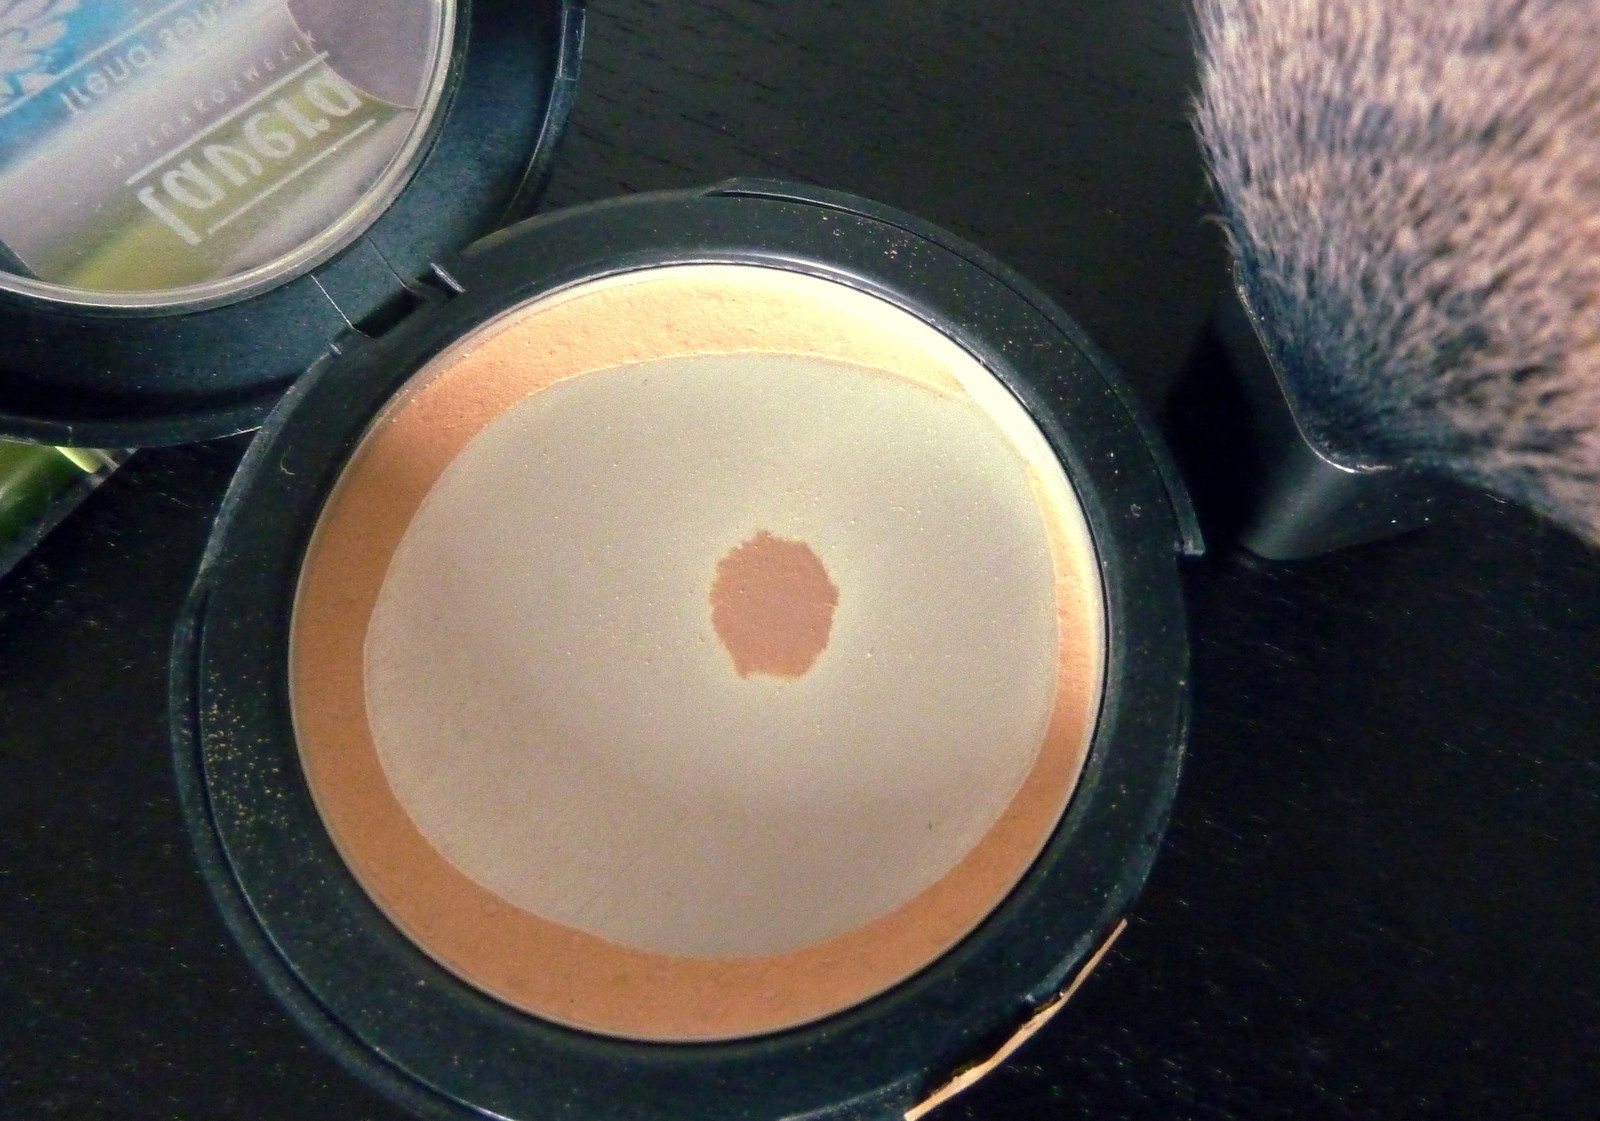 LAVERA NATURKOSMETIK MINERAL COMPACT POWDER HONEY Review und Test Bericht